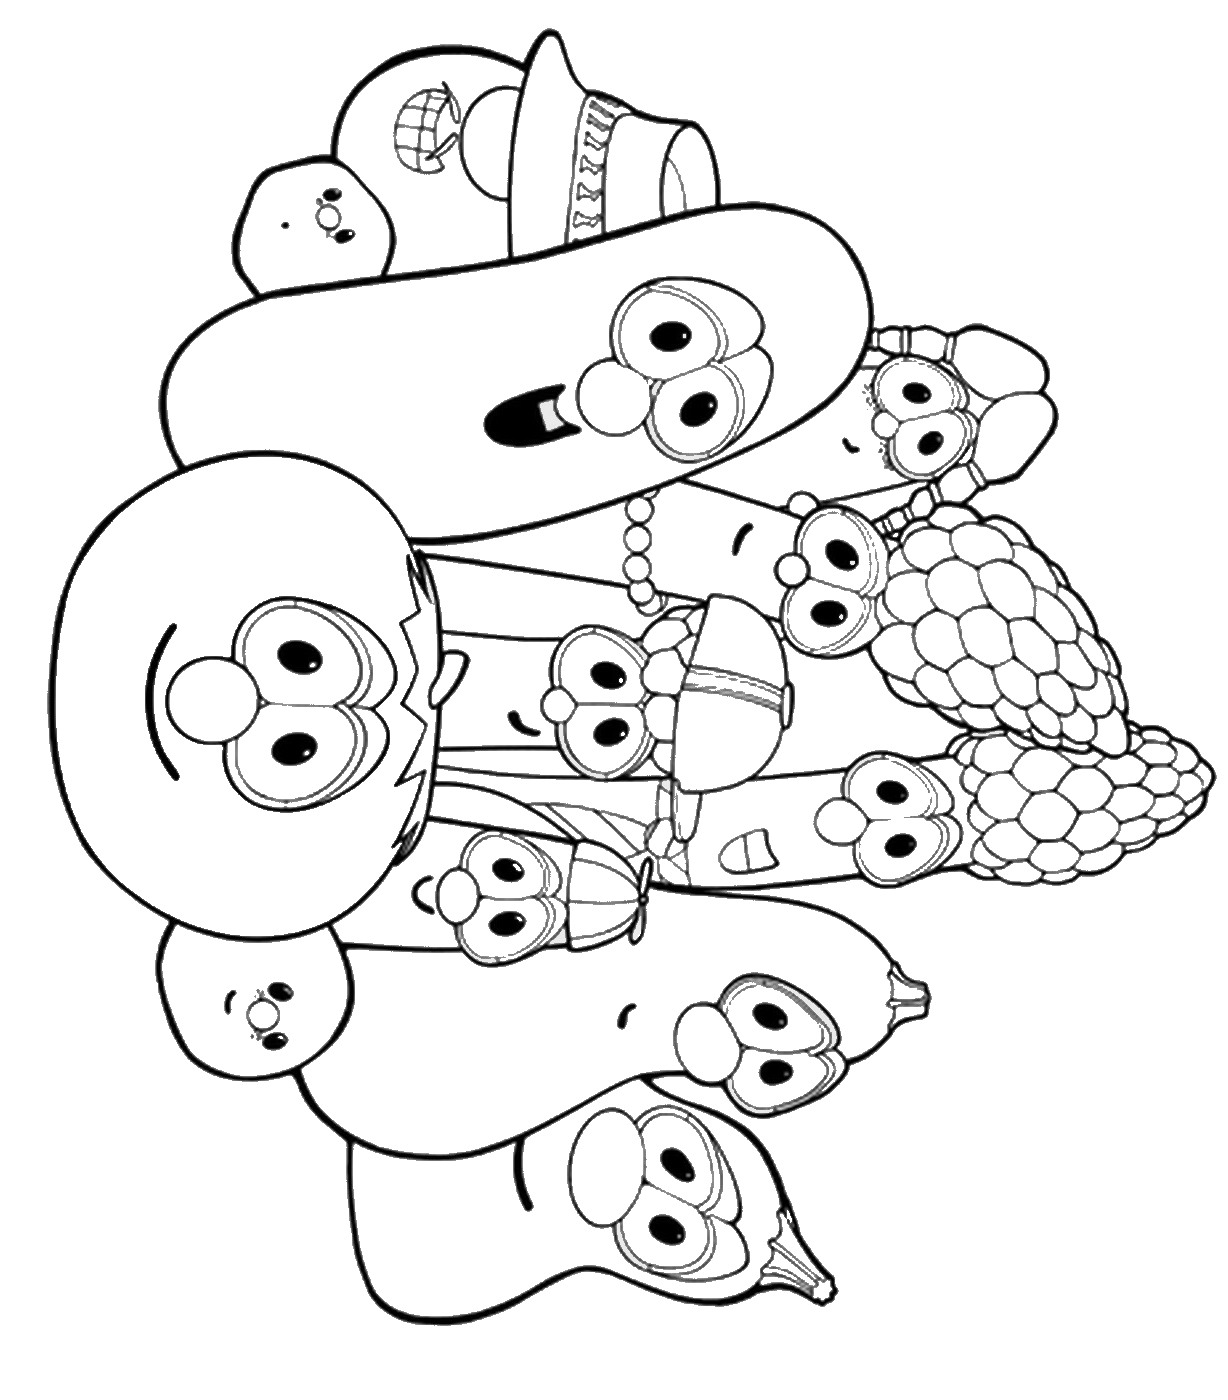 veggietales coloring pages free printable veggie tales coloring pages for kids coloring pages veggietales